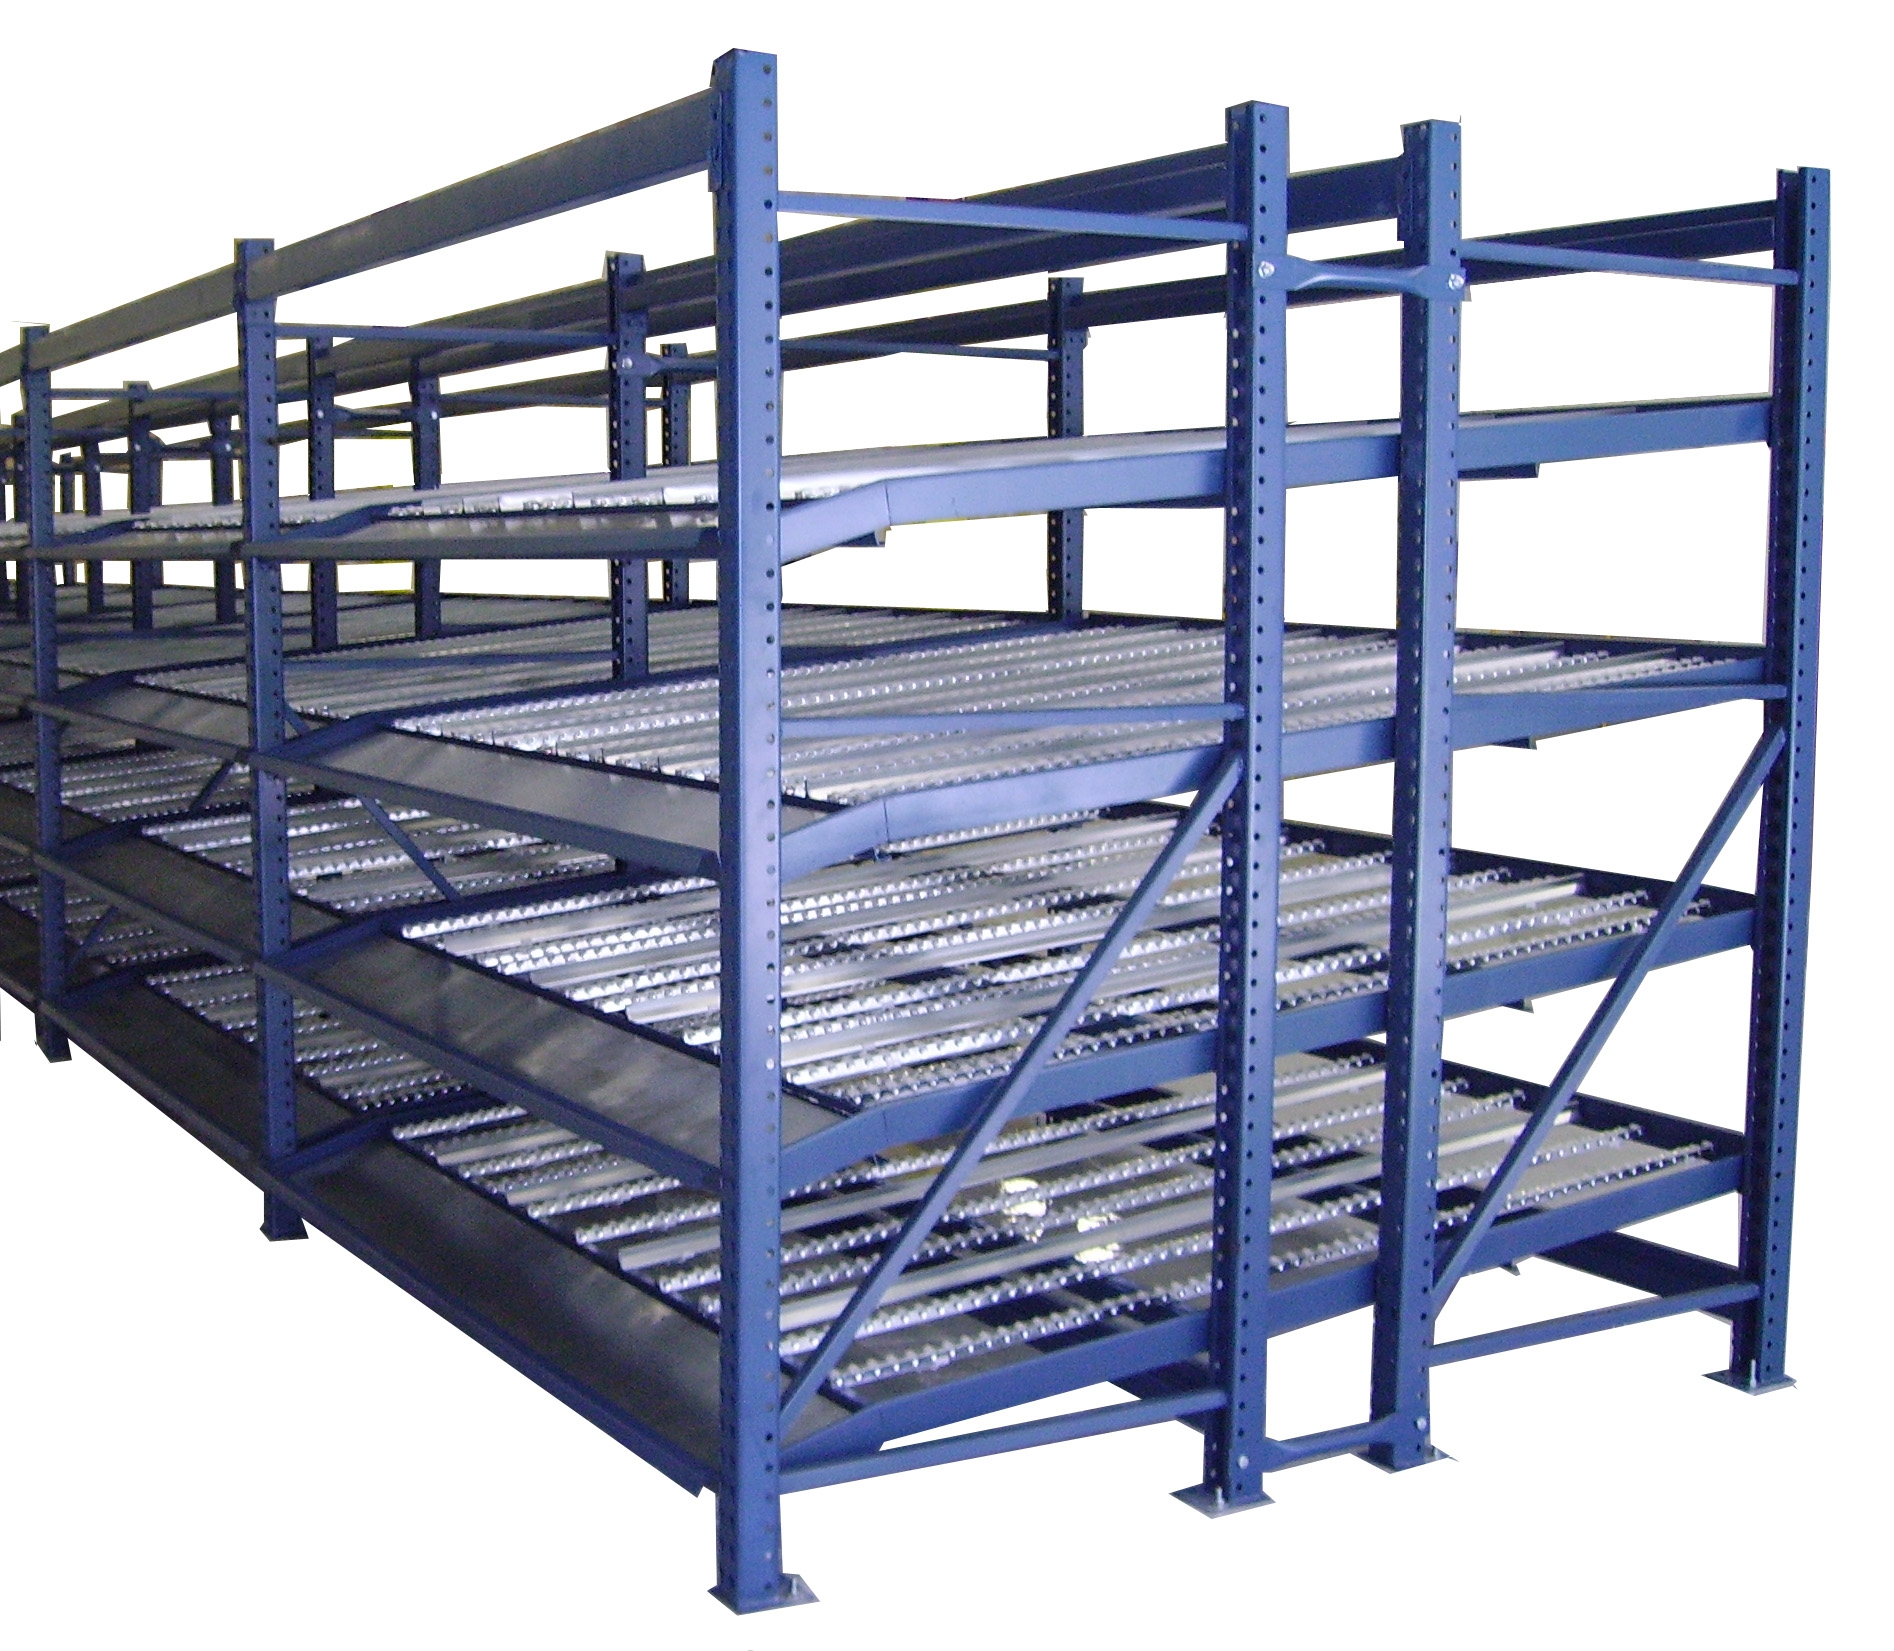 Carton Flow Racks Custom Equipment Company Ceccustom